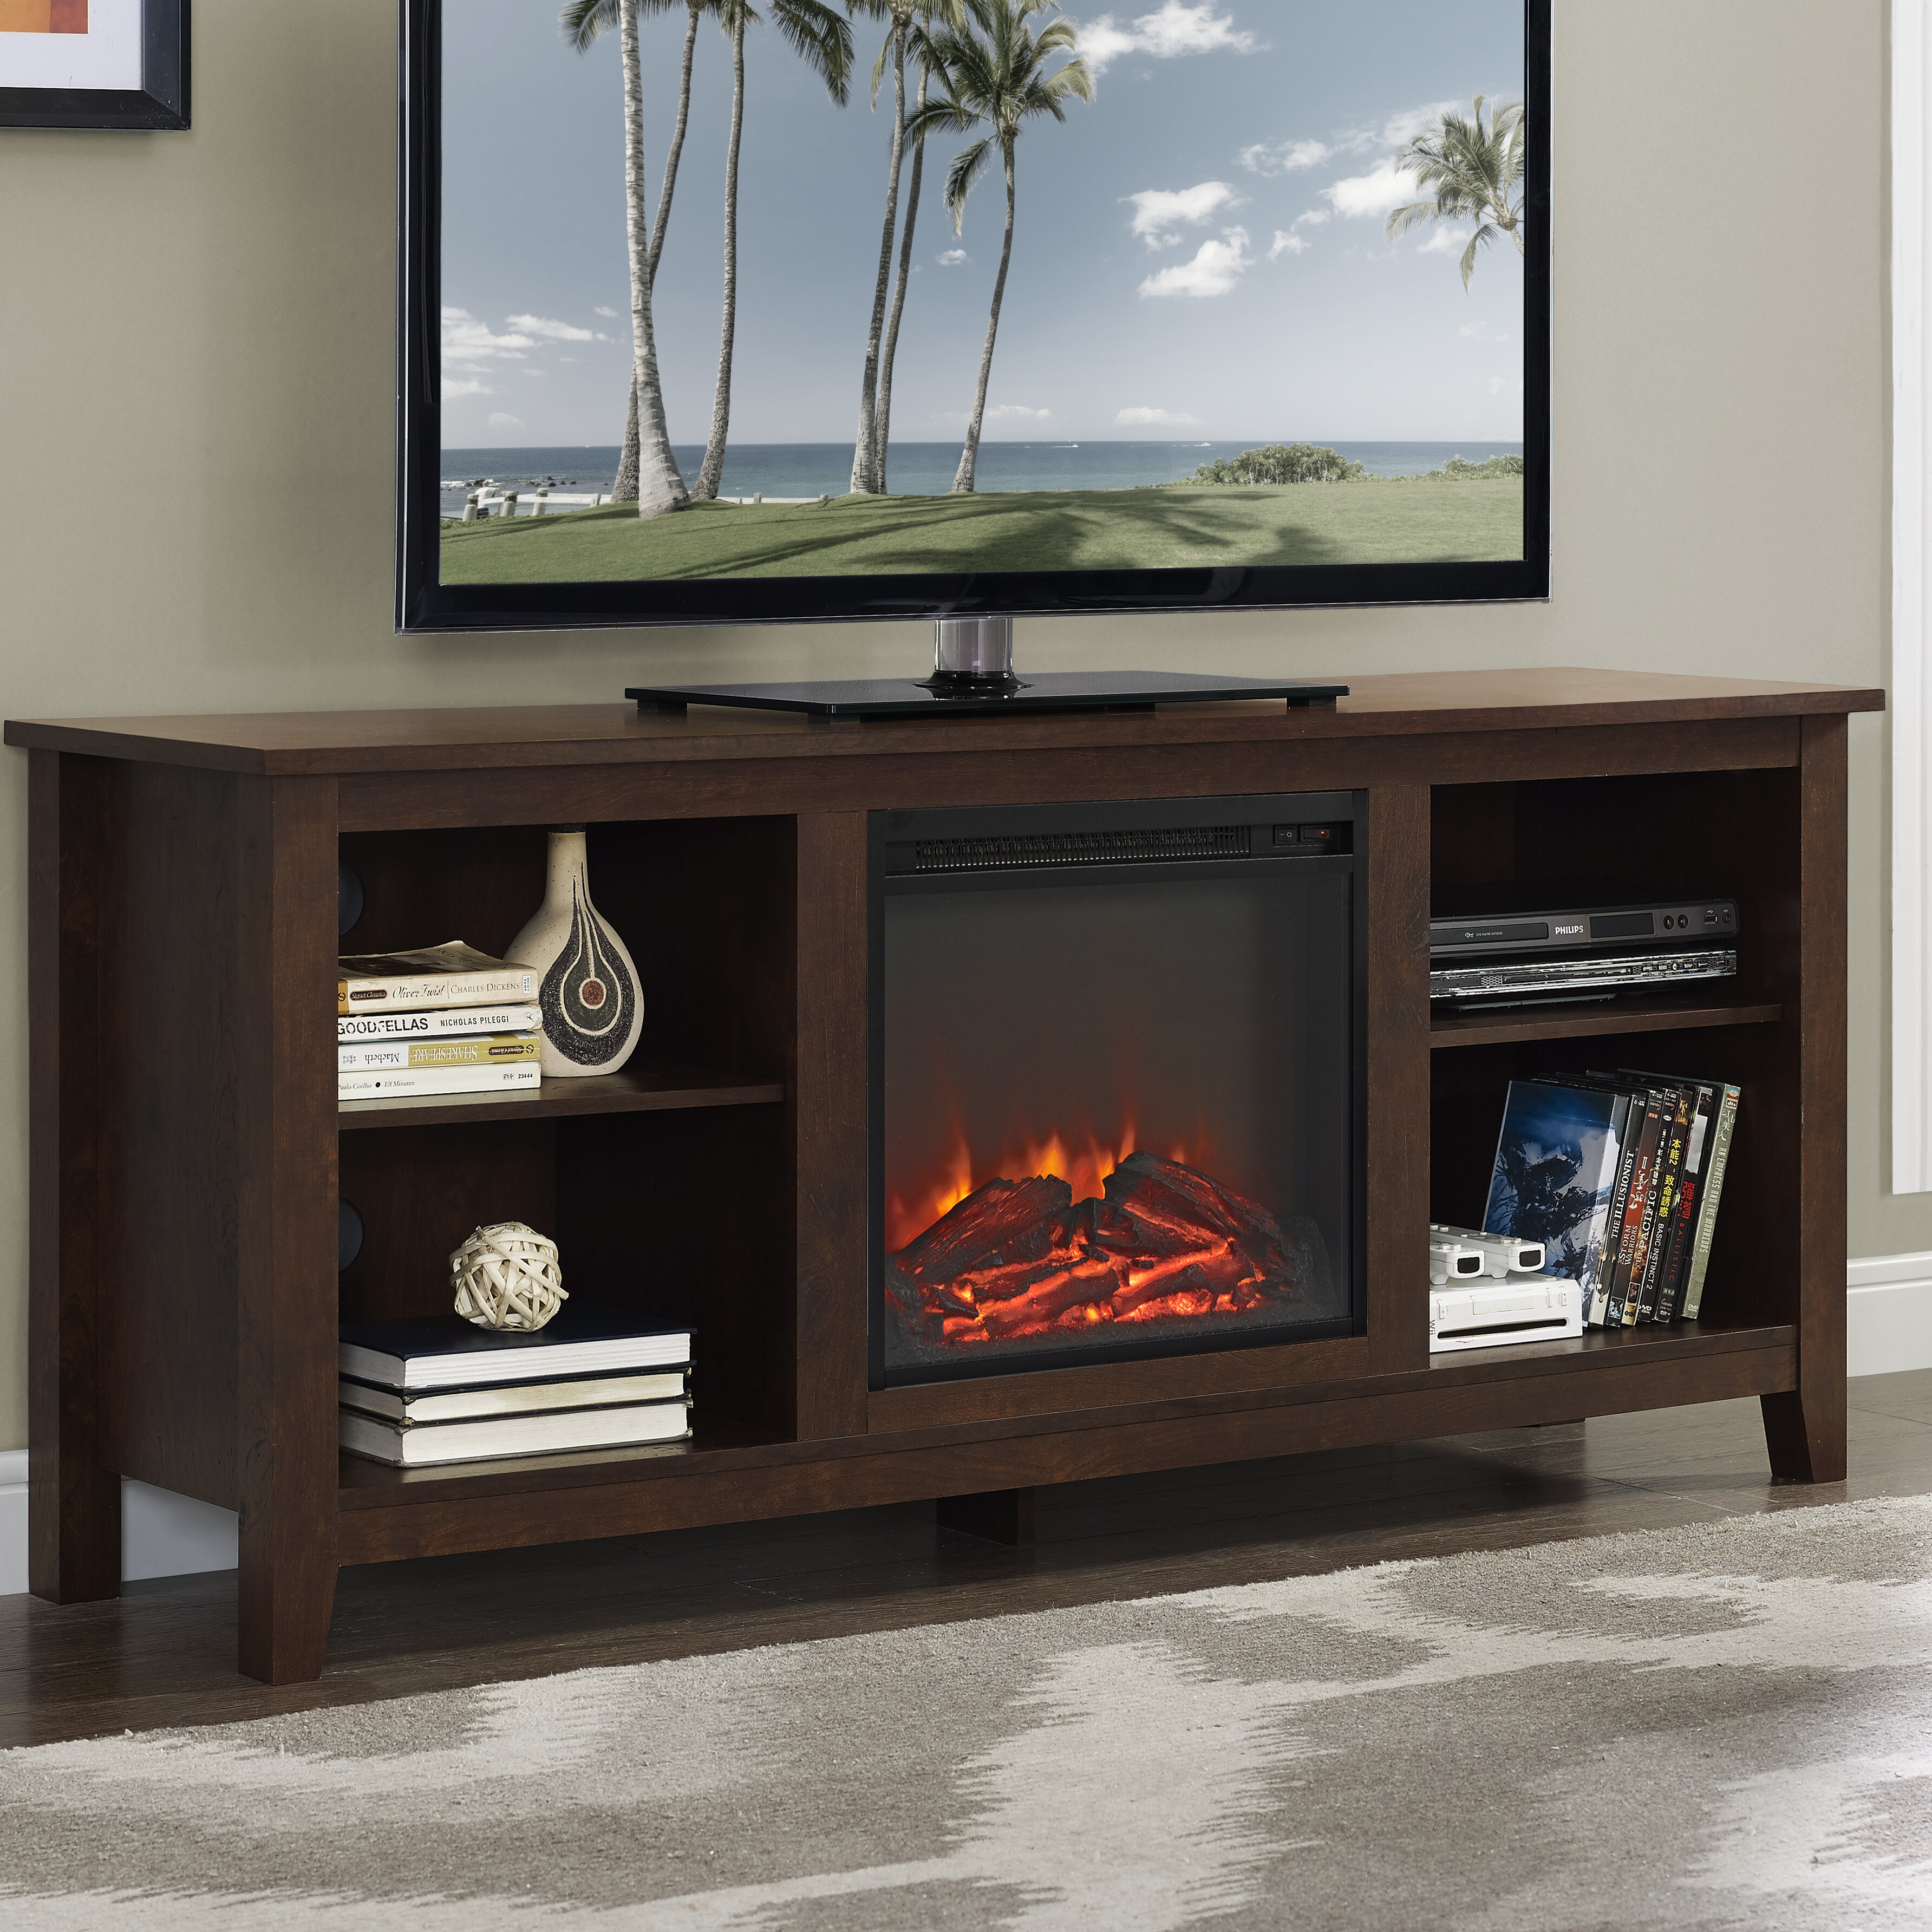 console entertainment your simple let ordinary modern and center home electric stand the away lighted a media itm with living donrsquot room ameriwood makeover fireplace lumina give step from tv